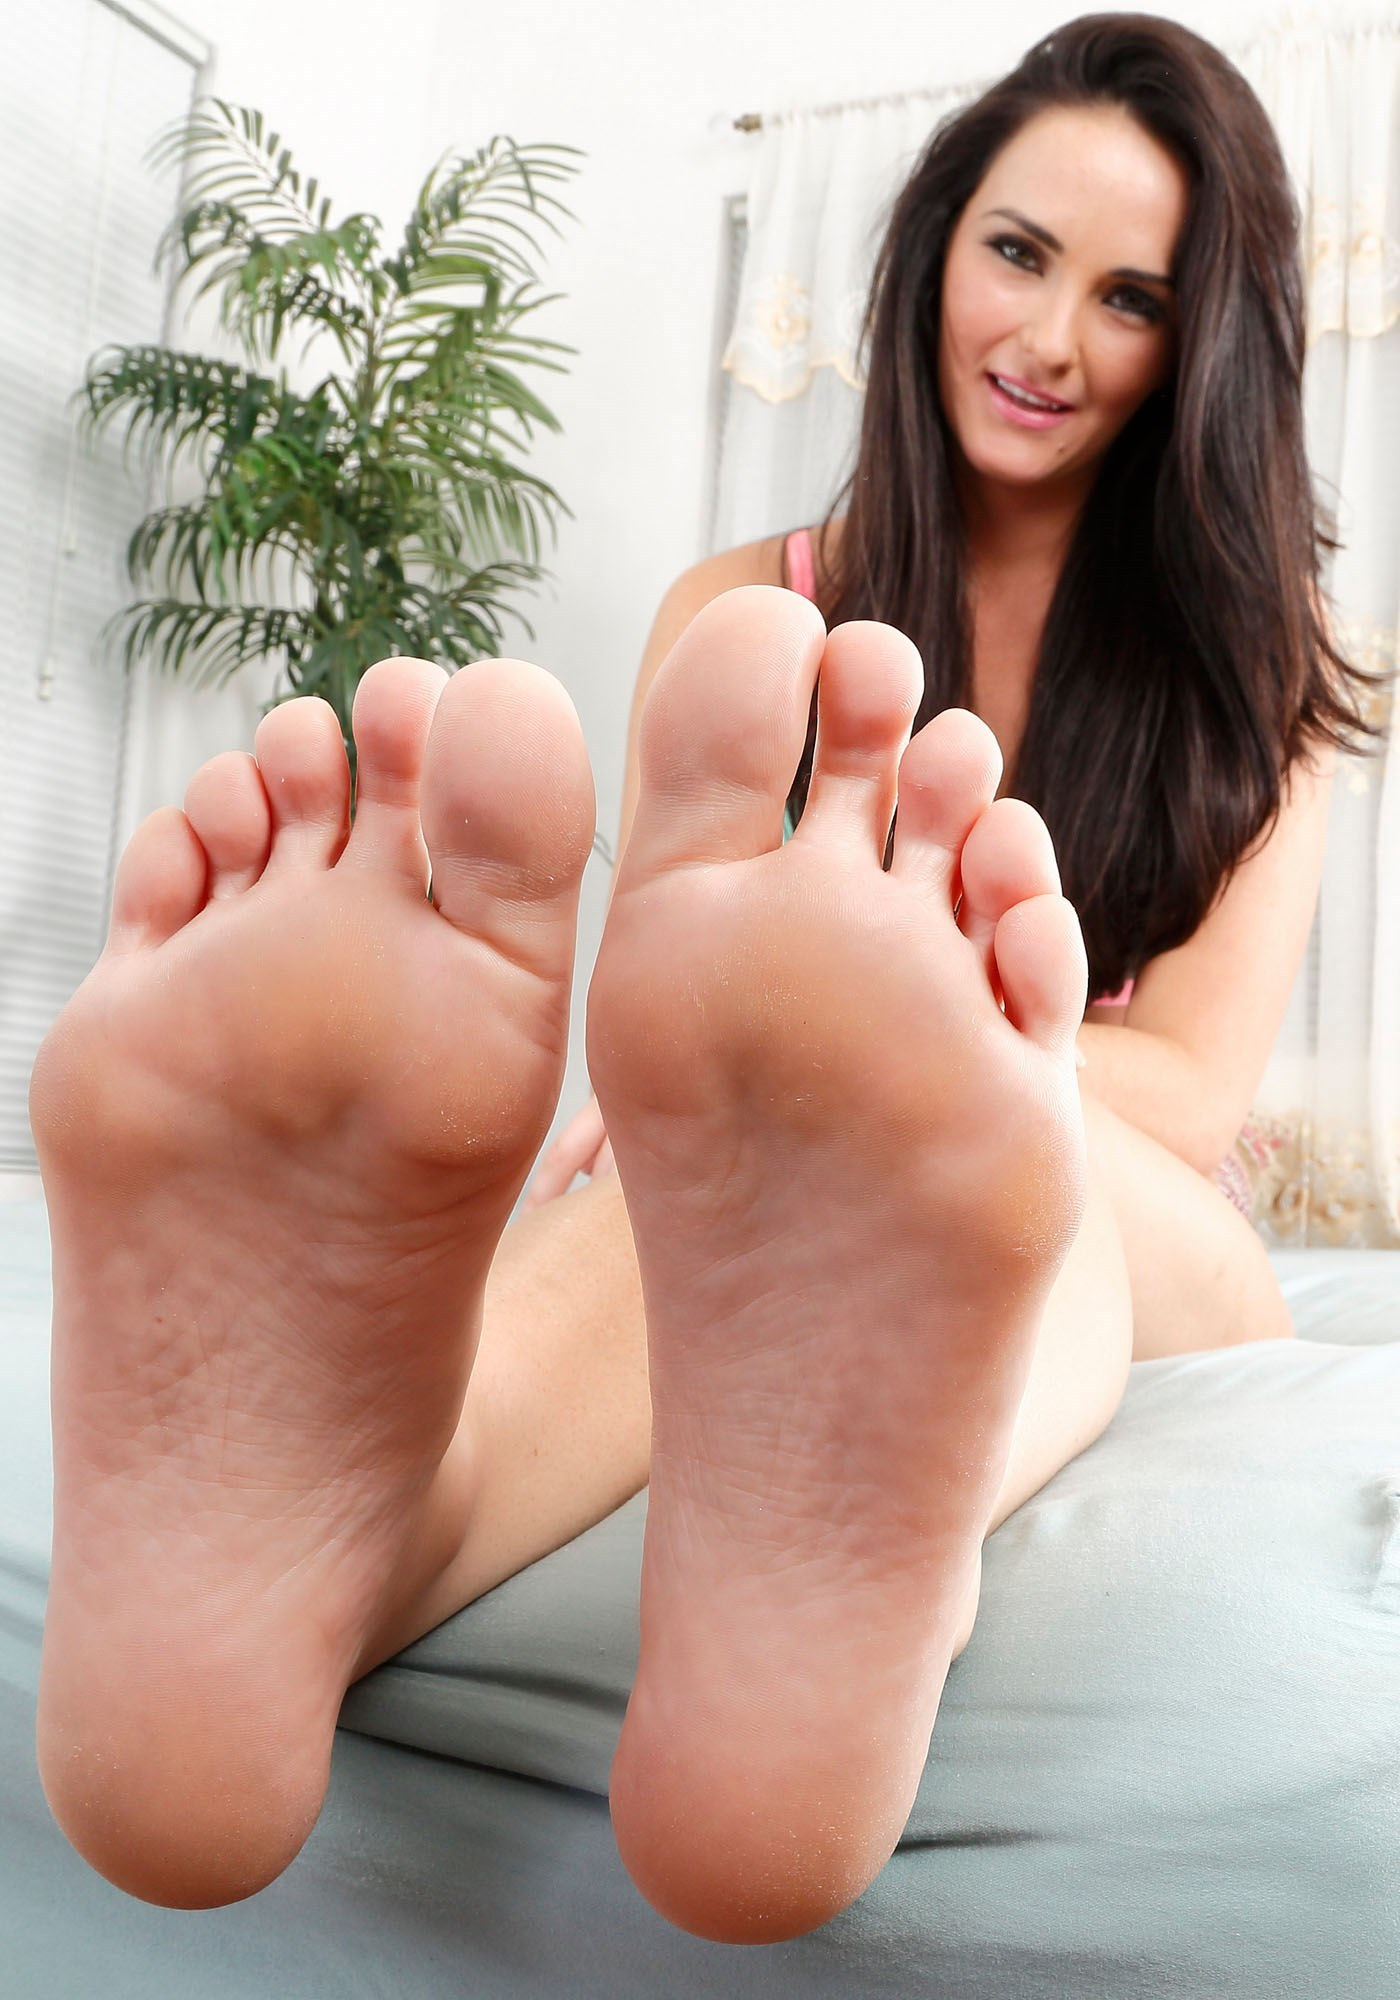 Bianca Feet Porn - People who liked Bianca Breeze's feet, also liked: